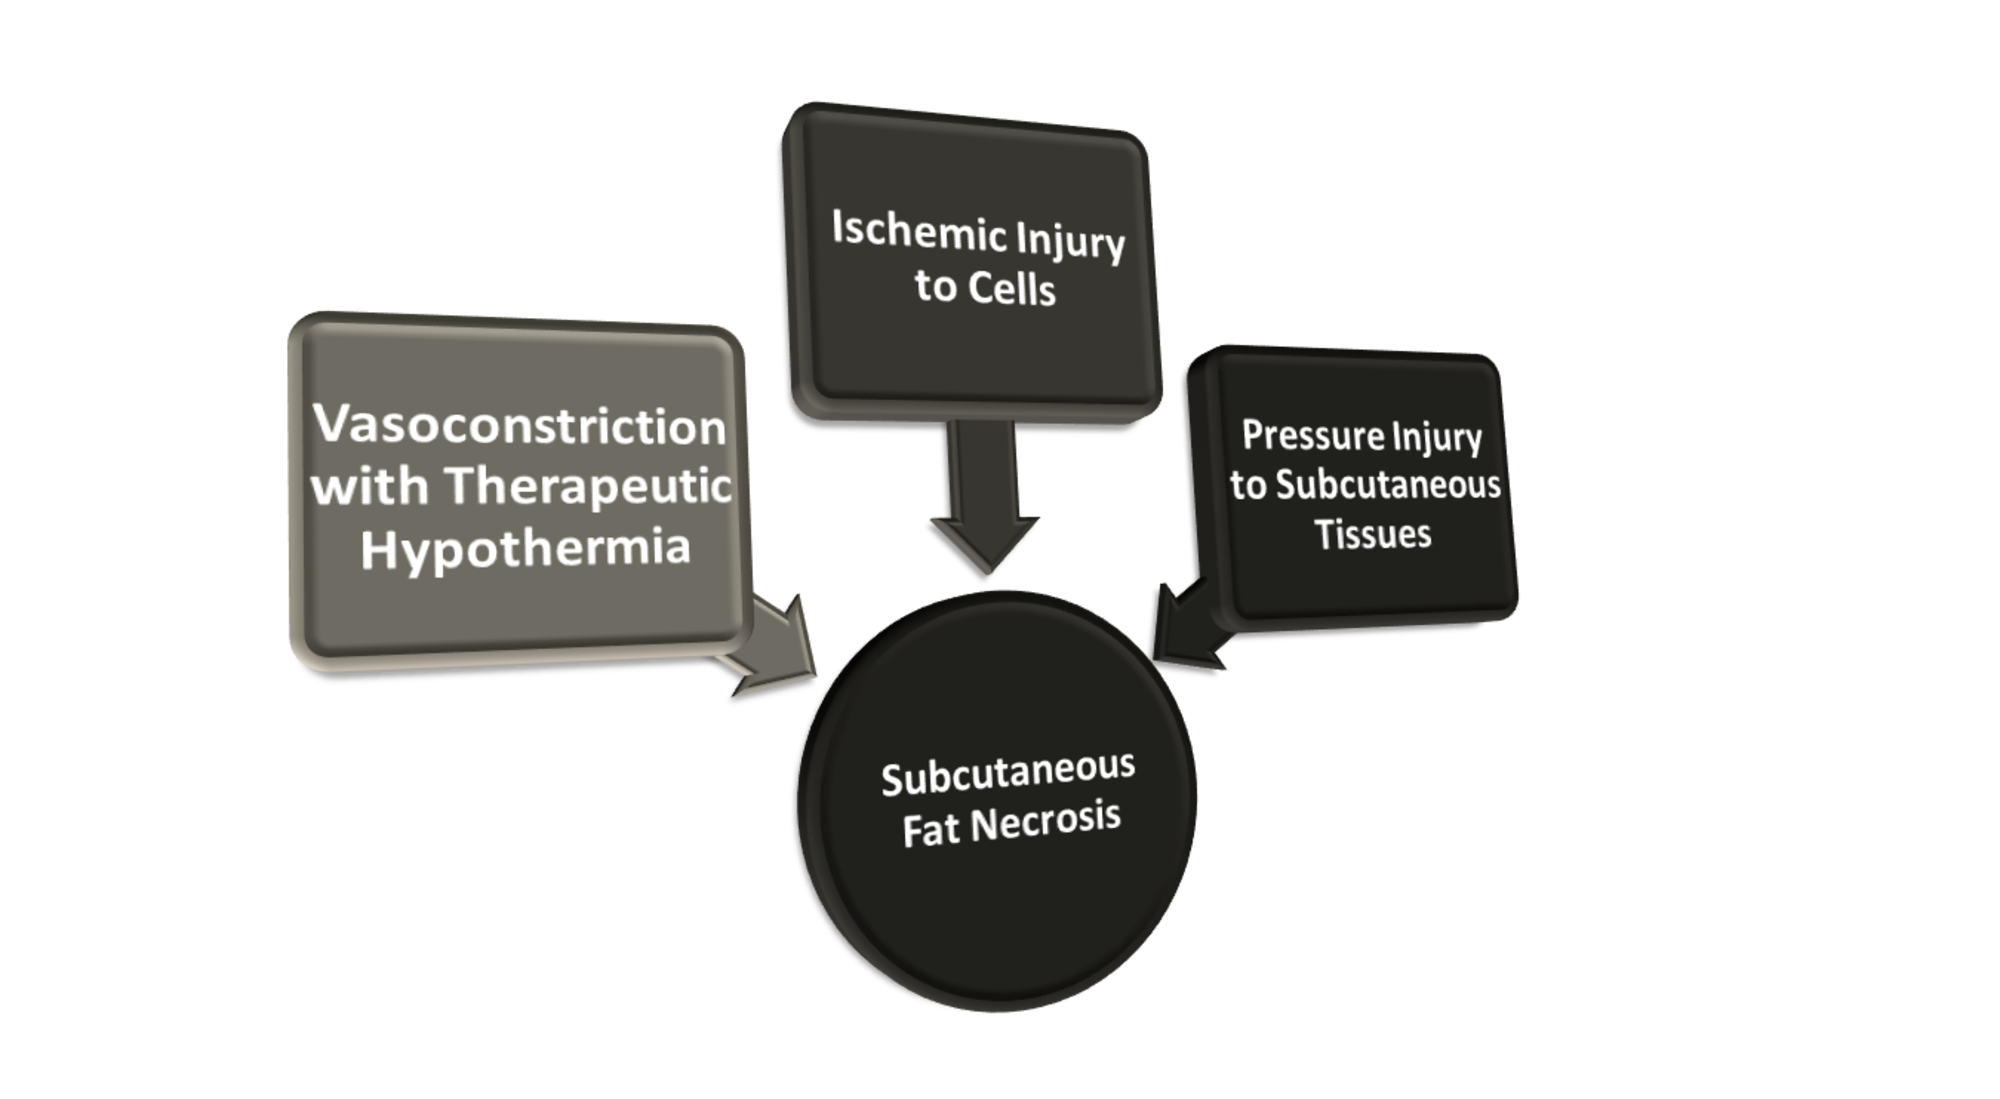 Etiology-of-subcutaneous-fat-necrosis-in-infants-receiving-therapeutic-hypothermia-for-hypoxic-ischemic-encephalopathy